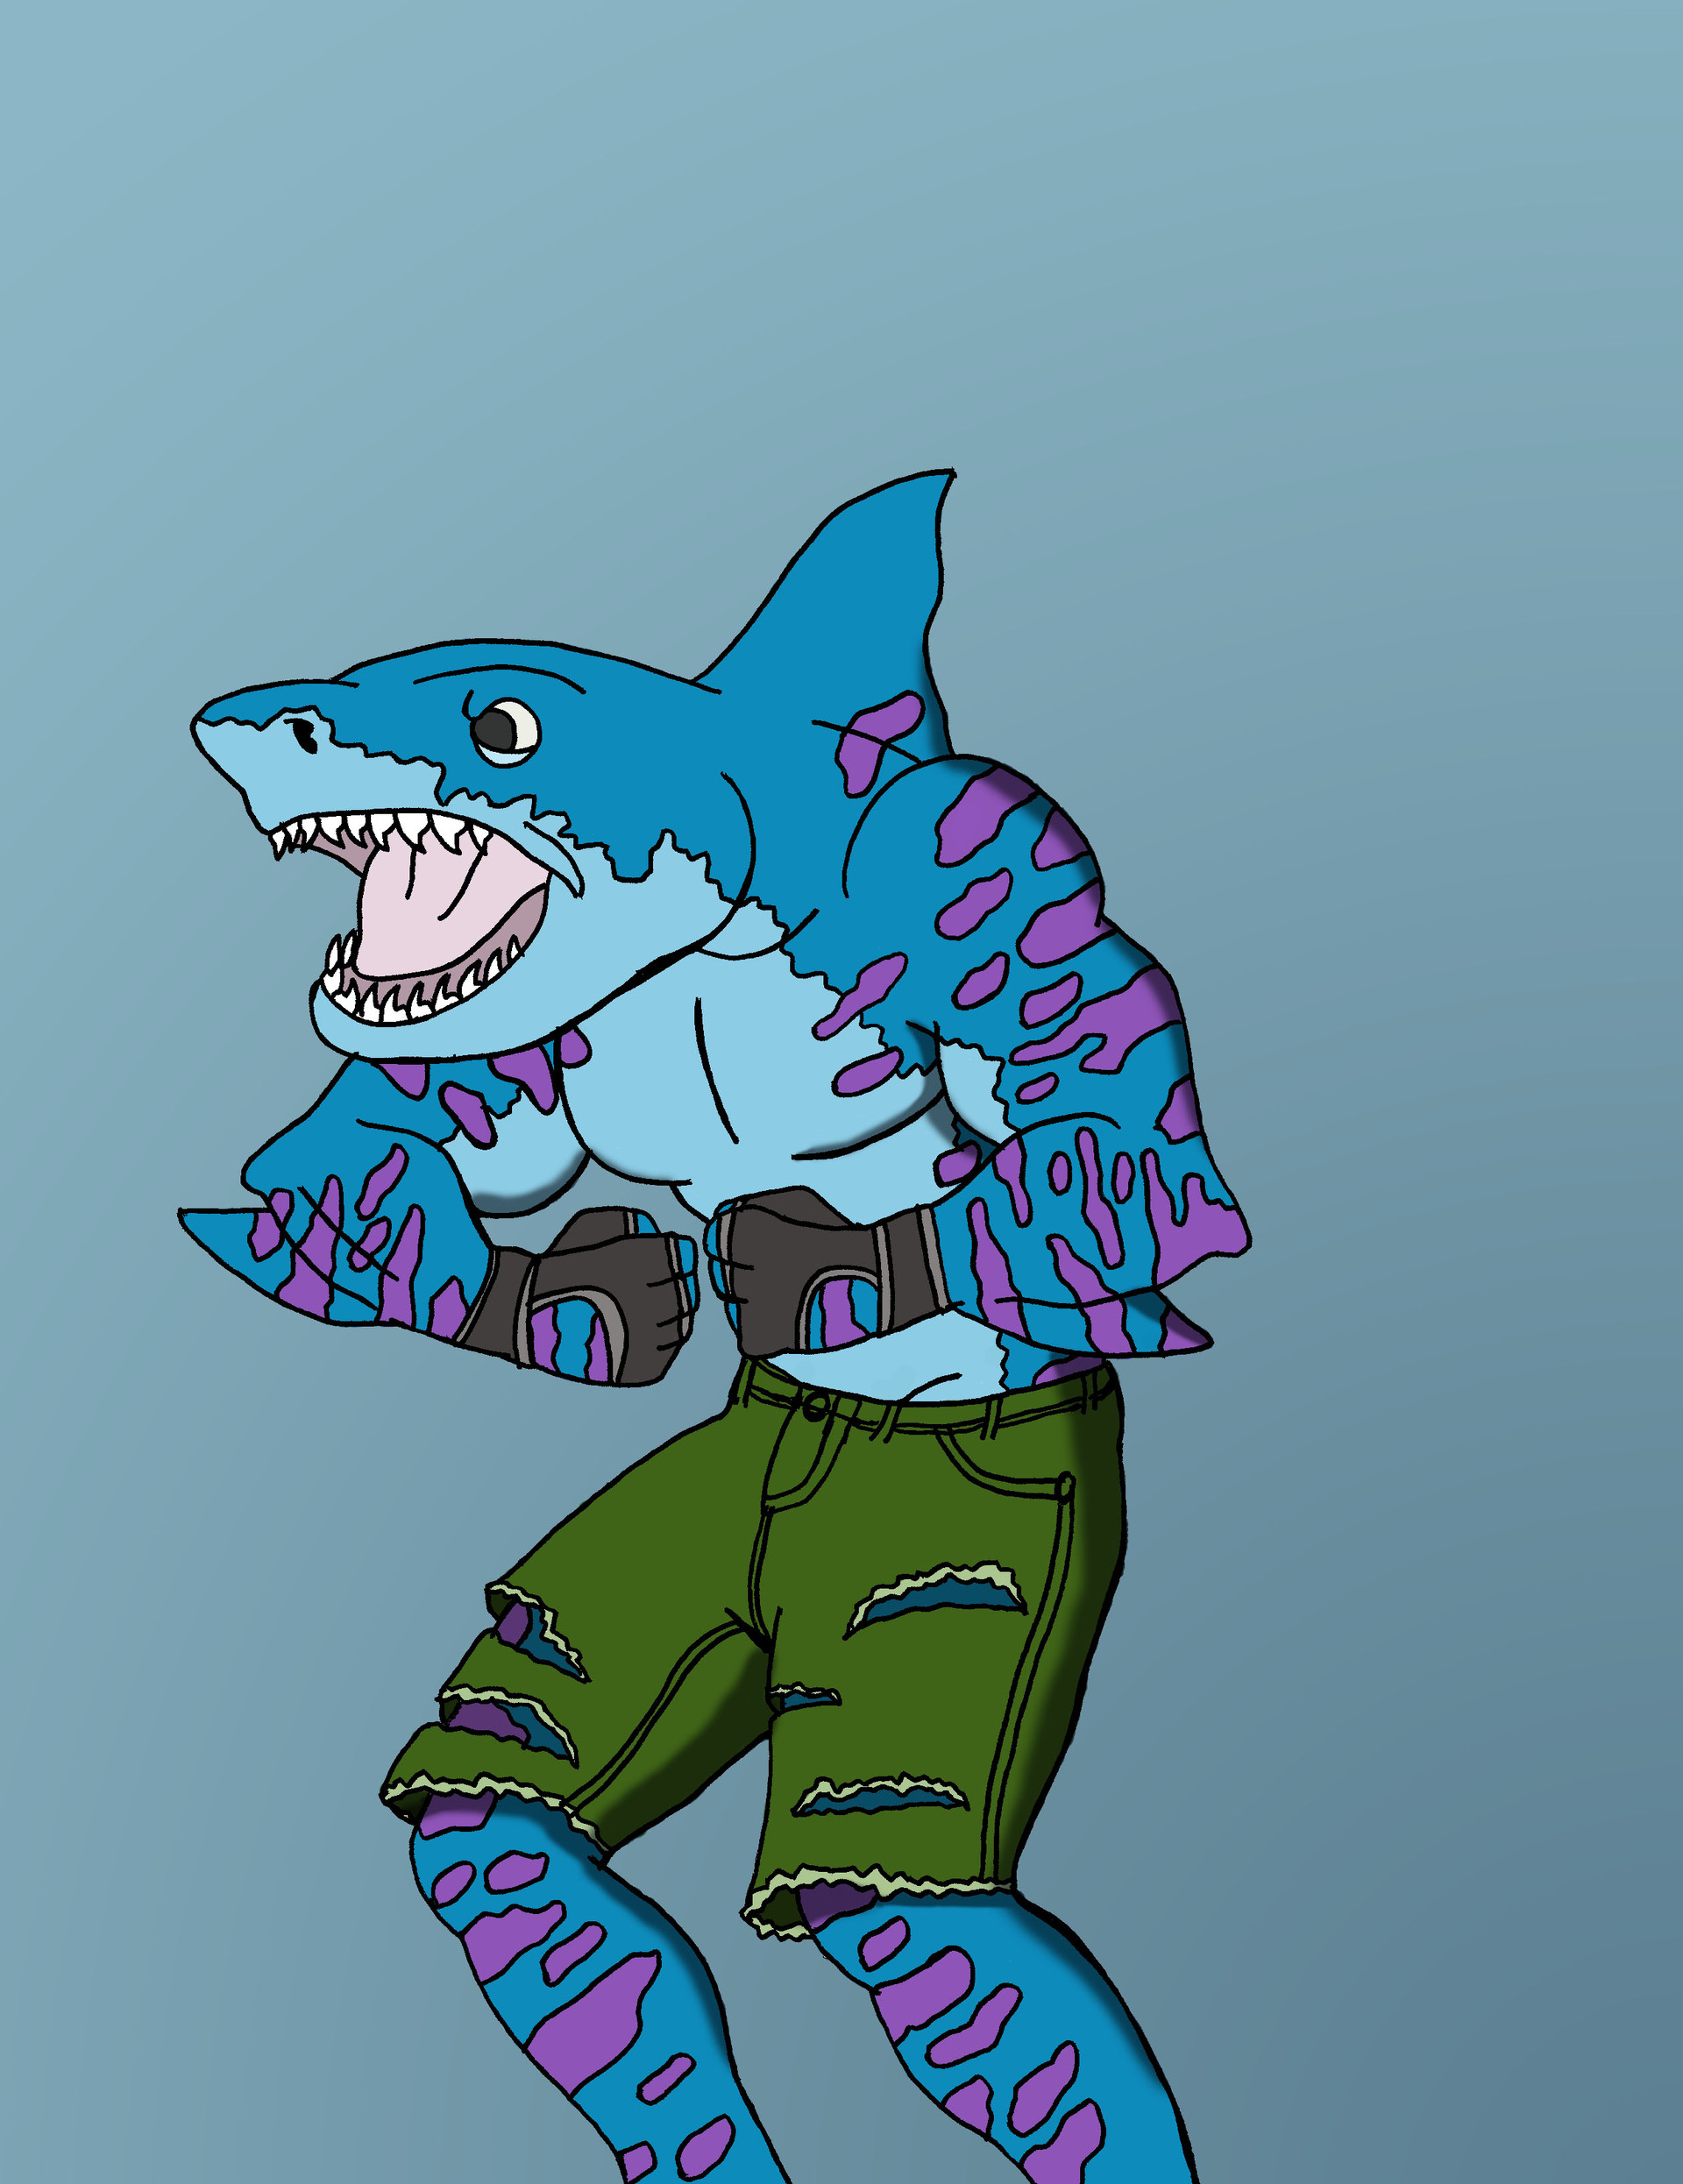 Street sharks characters